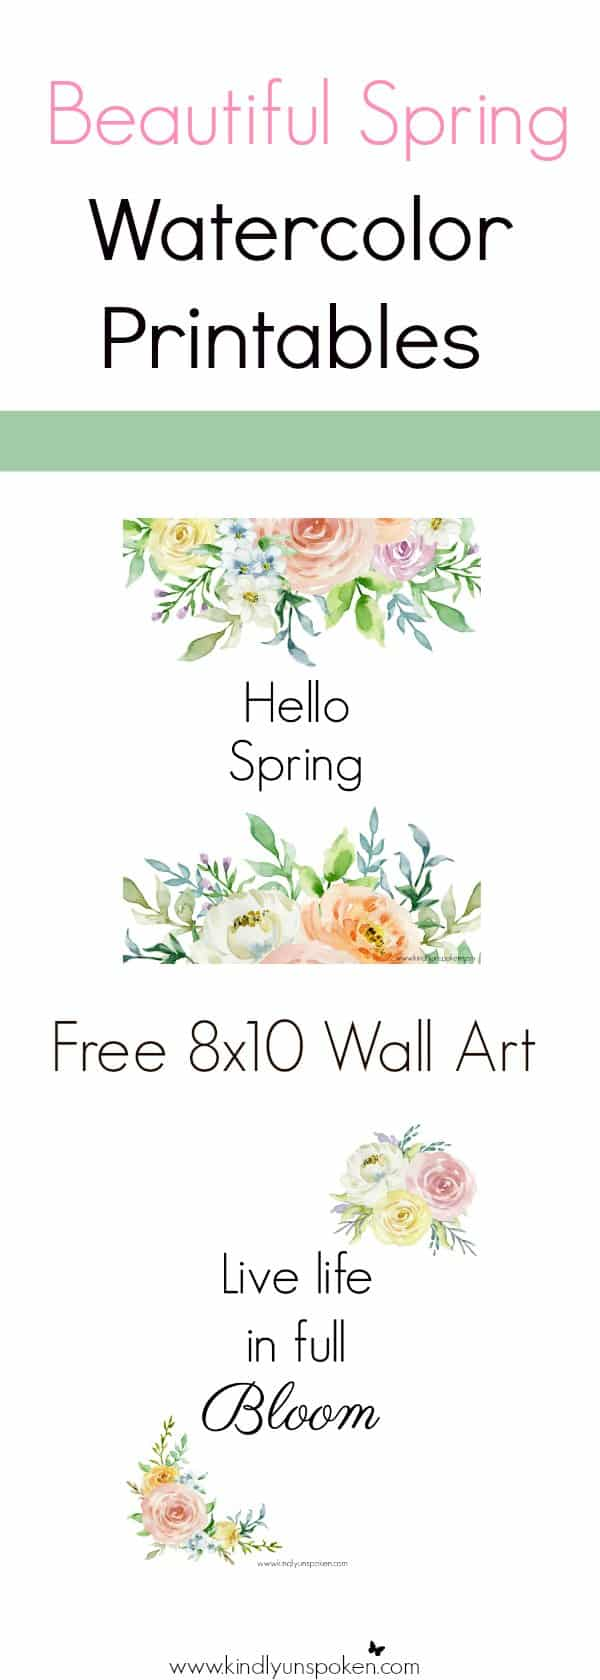 These free spring printables are the perfect wall art for brightening up your home or office space this spring or easter season! You'll love displaying these 8x10 printables that feature beautiful spring watercolor flowers and inspirational quotes on enjoying the beauty around you.